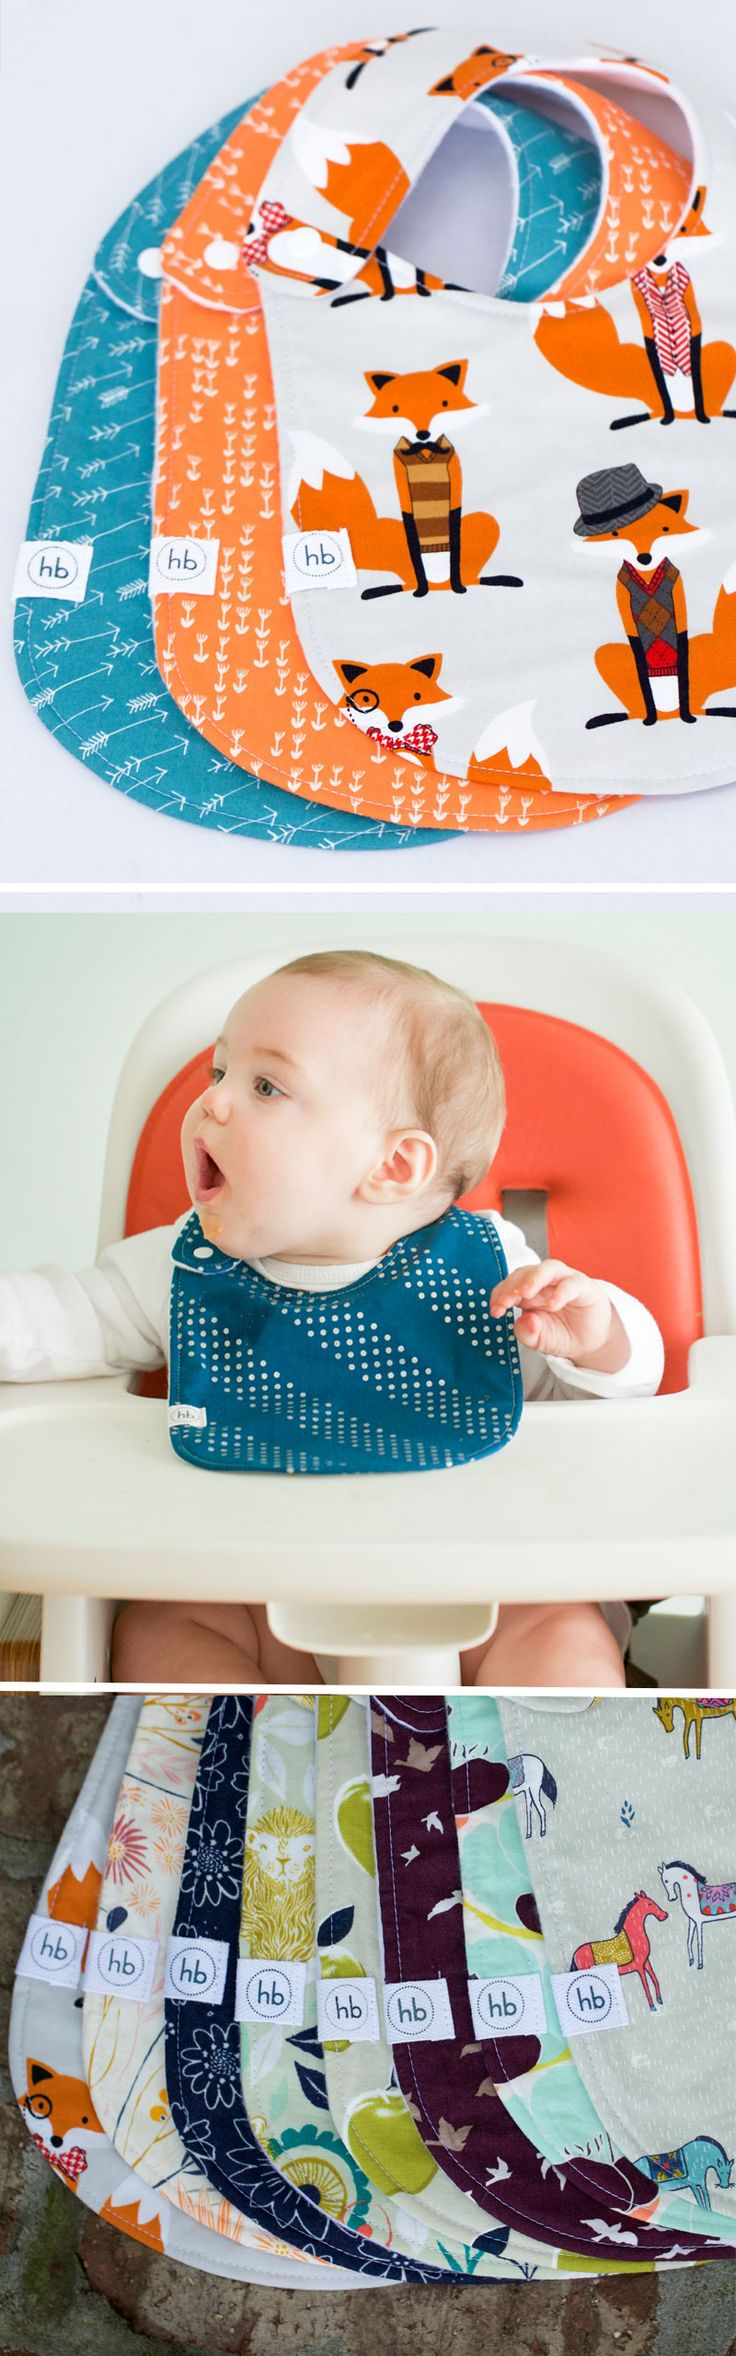 """Charlie Bib   Hemming Birds Boutique. Colorful, fun and machine washable! Made to be your """"go-to"""" bib and adorable for outings. Gender neutral plus designs for girls and boys. Thoughtfully designed with no velcro and side snap. Makes a perfect baby gift!"""